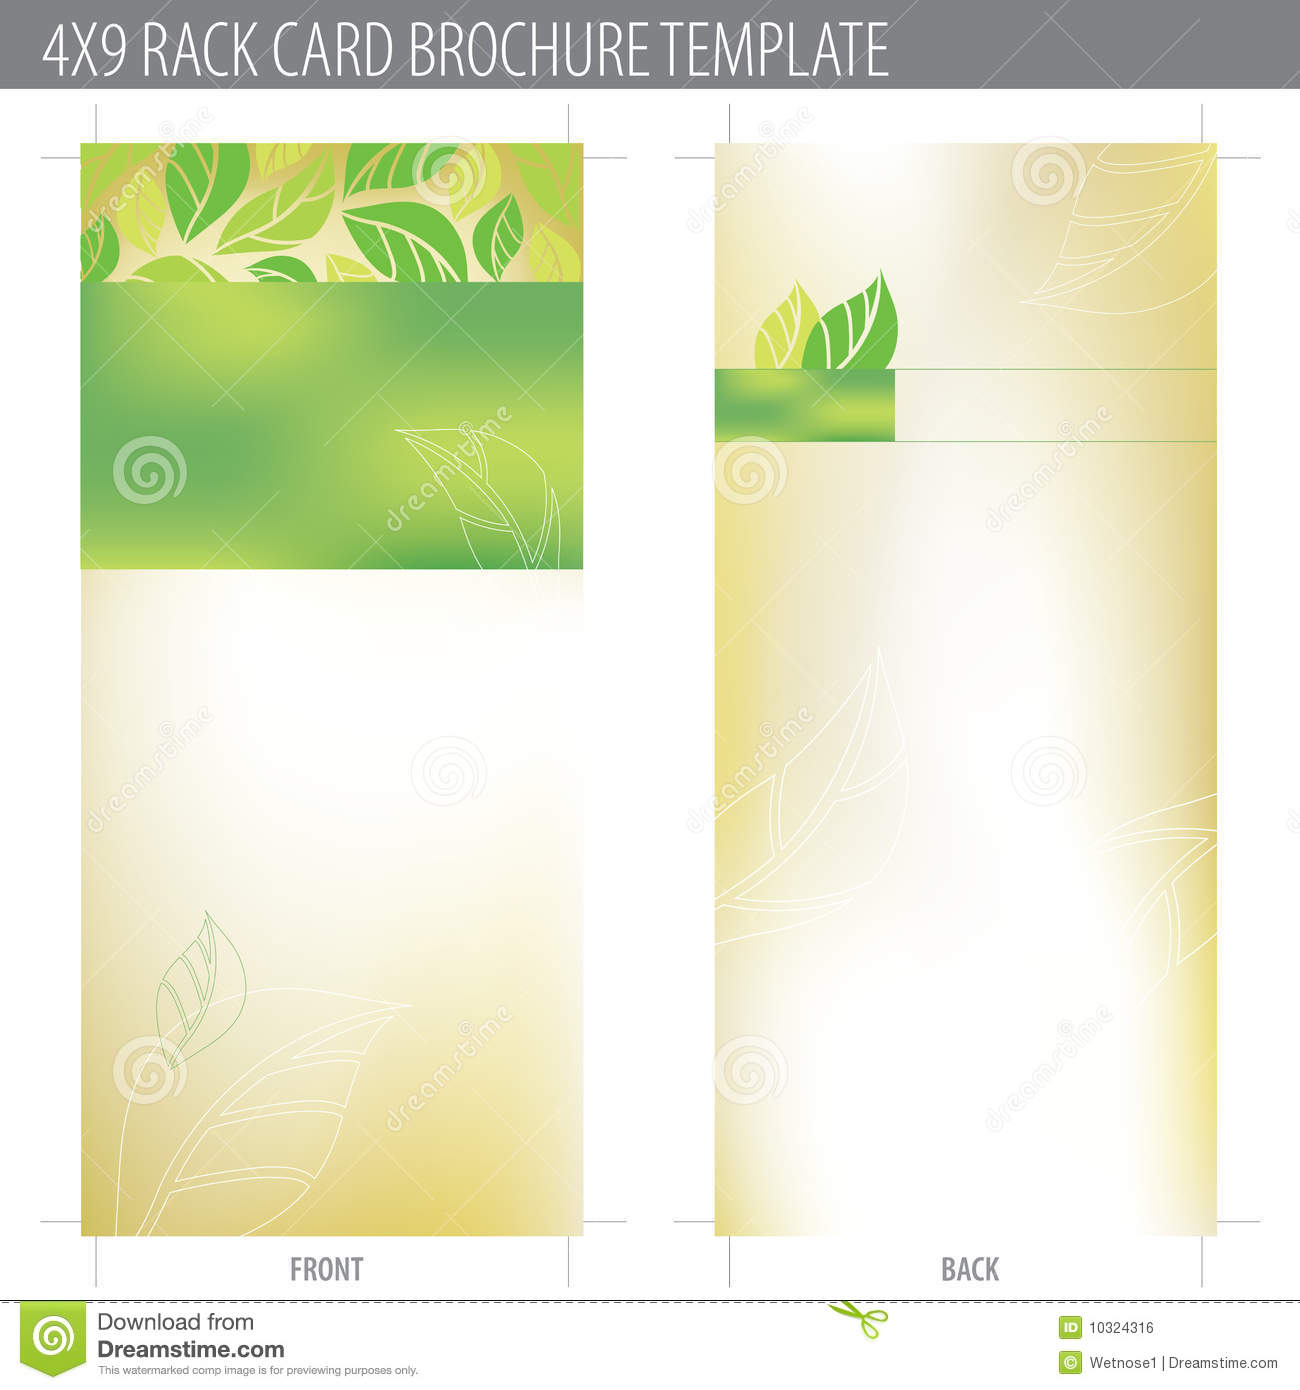 4x9 rack card brochure template stock vector image 10324316 for Template for brochure free